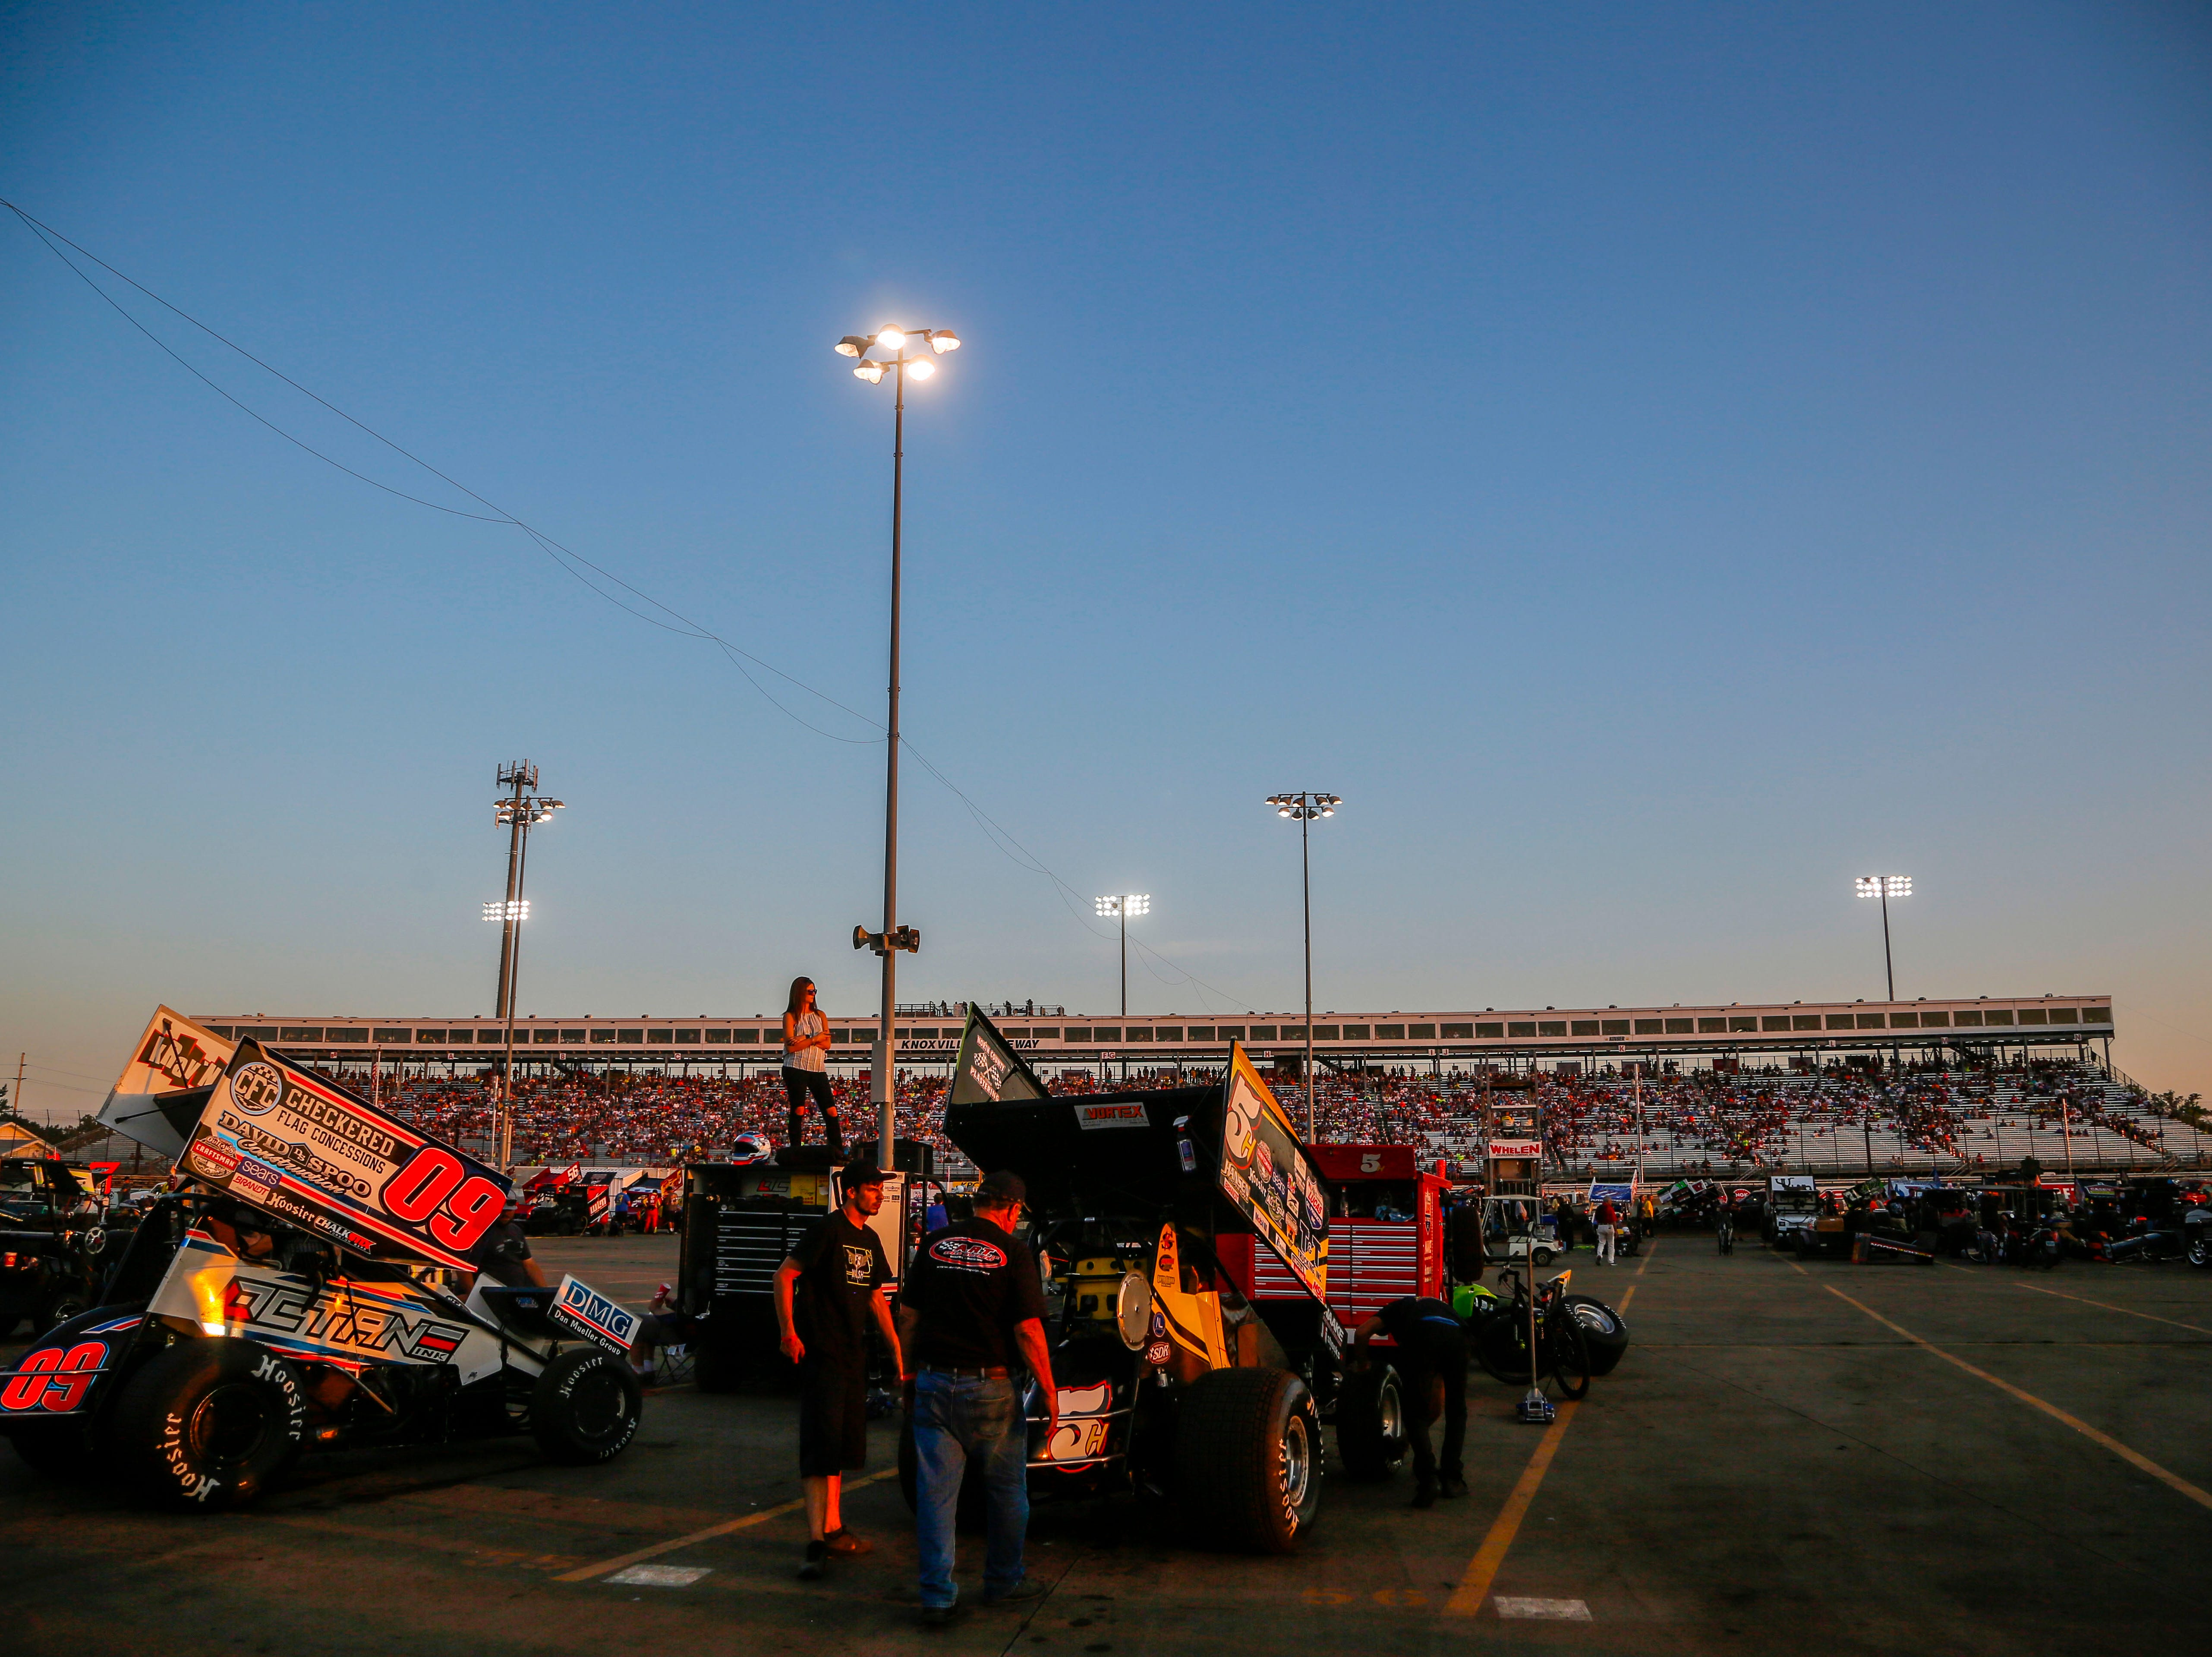 The infield during the Knoxville Nationals Wednesday, Aug. 8, 2018.